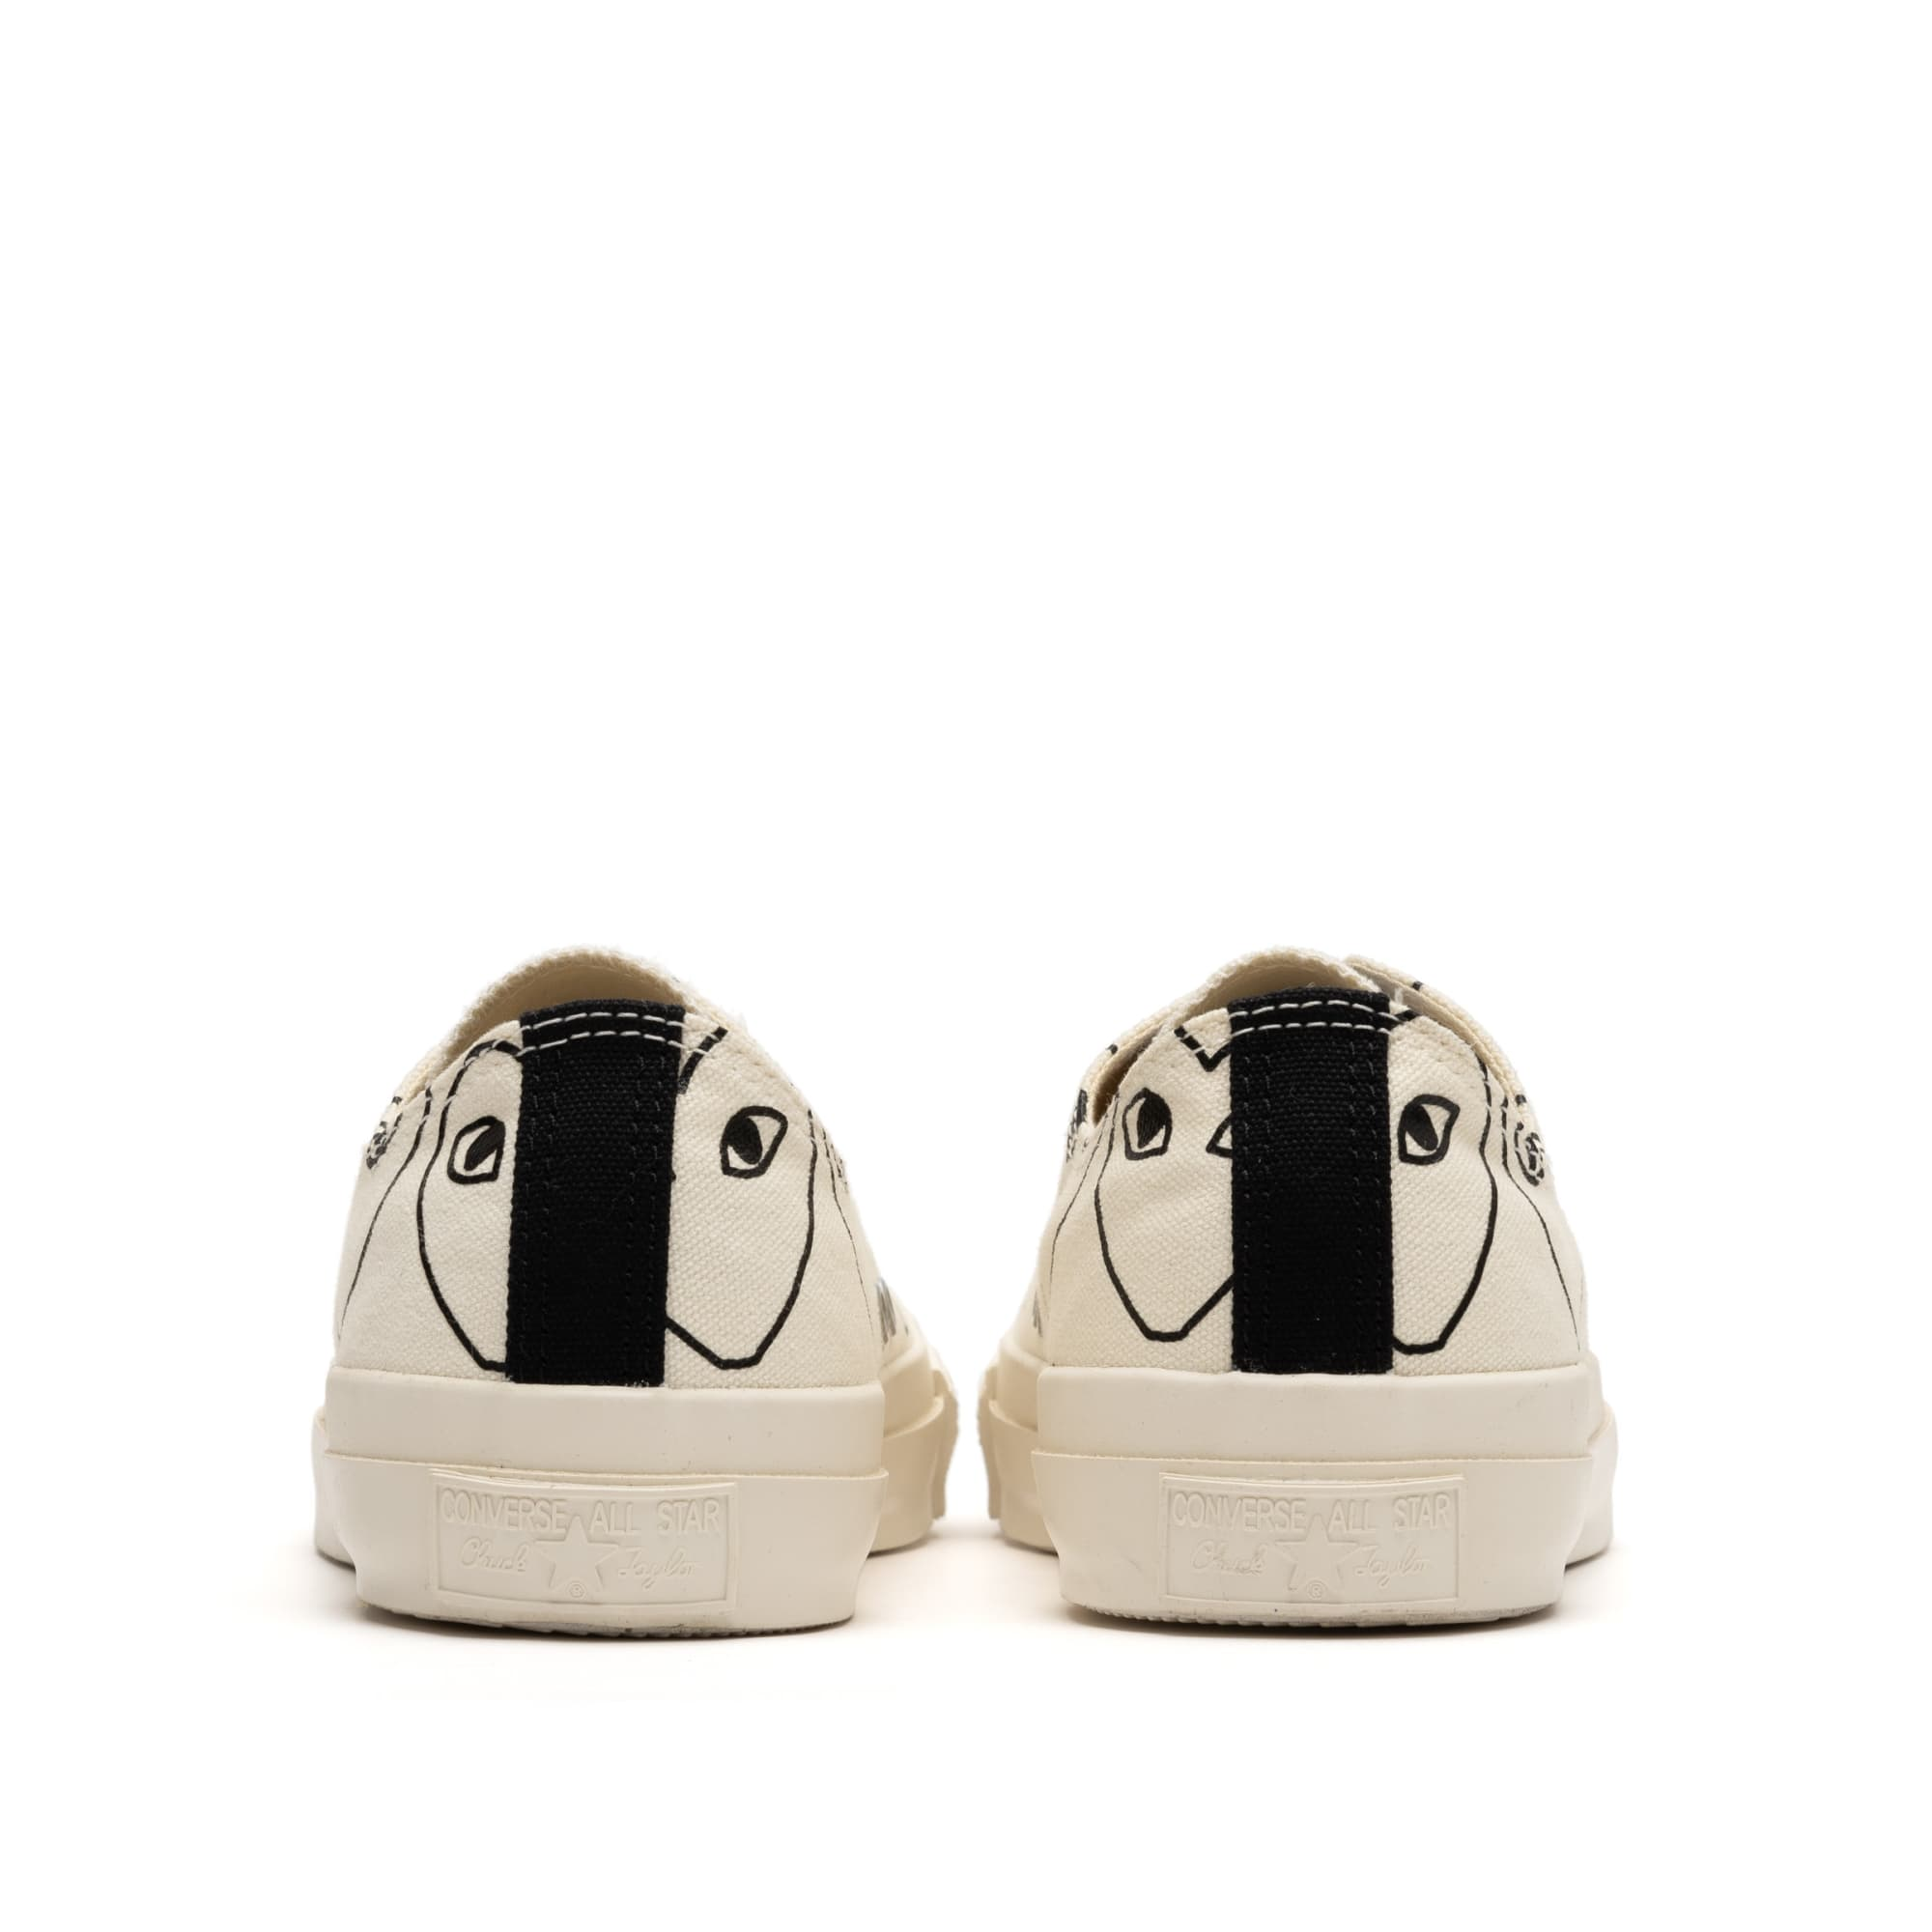 play-comme-des-garcons-converse-all-star-low-hi-release-20200429